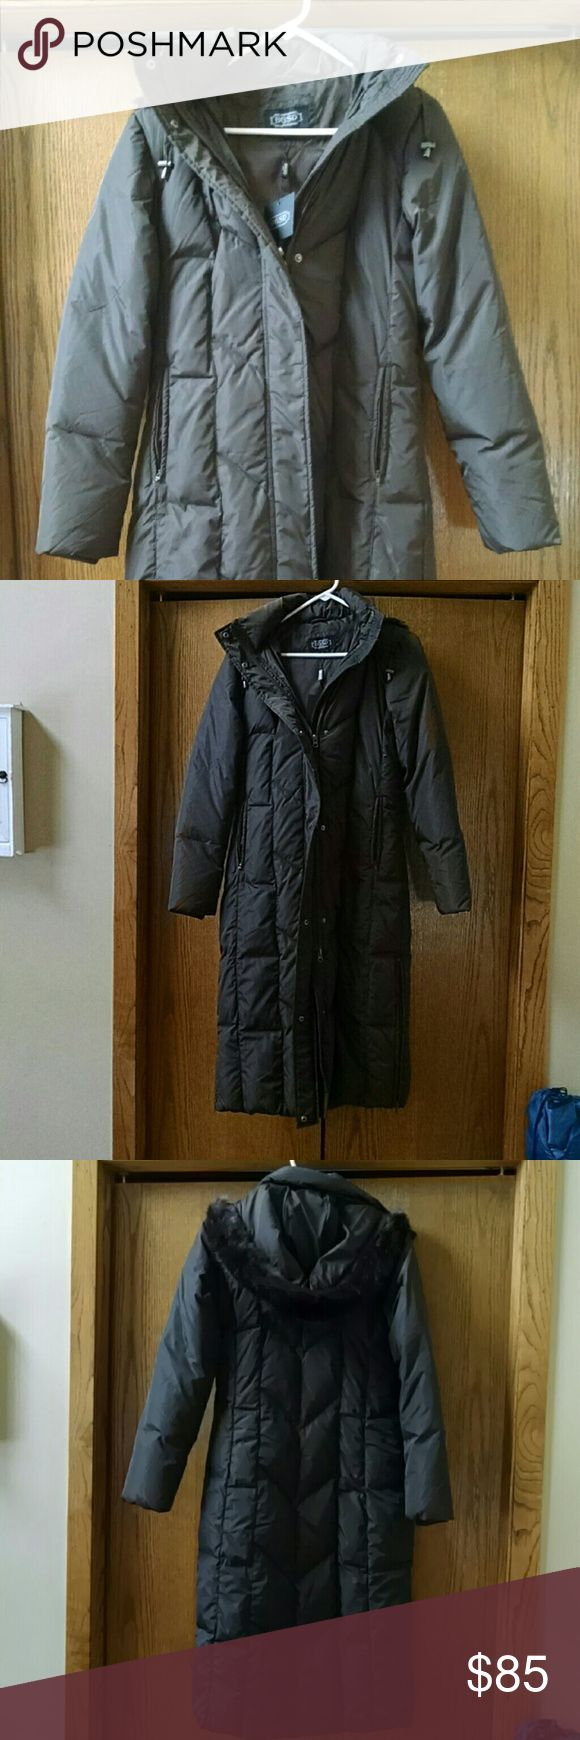 BGSD women's puffer winter coat Warm and cute brown puffer coat with faux fur hood. New with tags. Long, great for cold days while still looking cute. Has side zippers from the bottom of the coat to about the knee for better range of motion if needed. BGSD Jackets & Coats Puffers